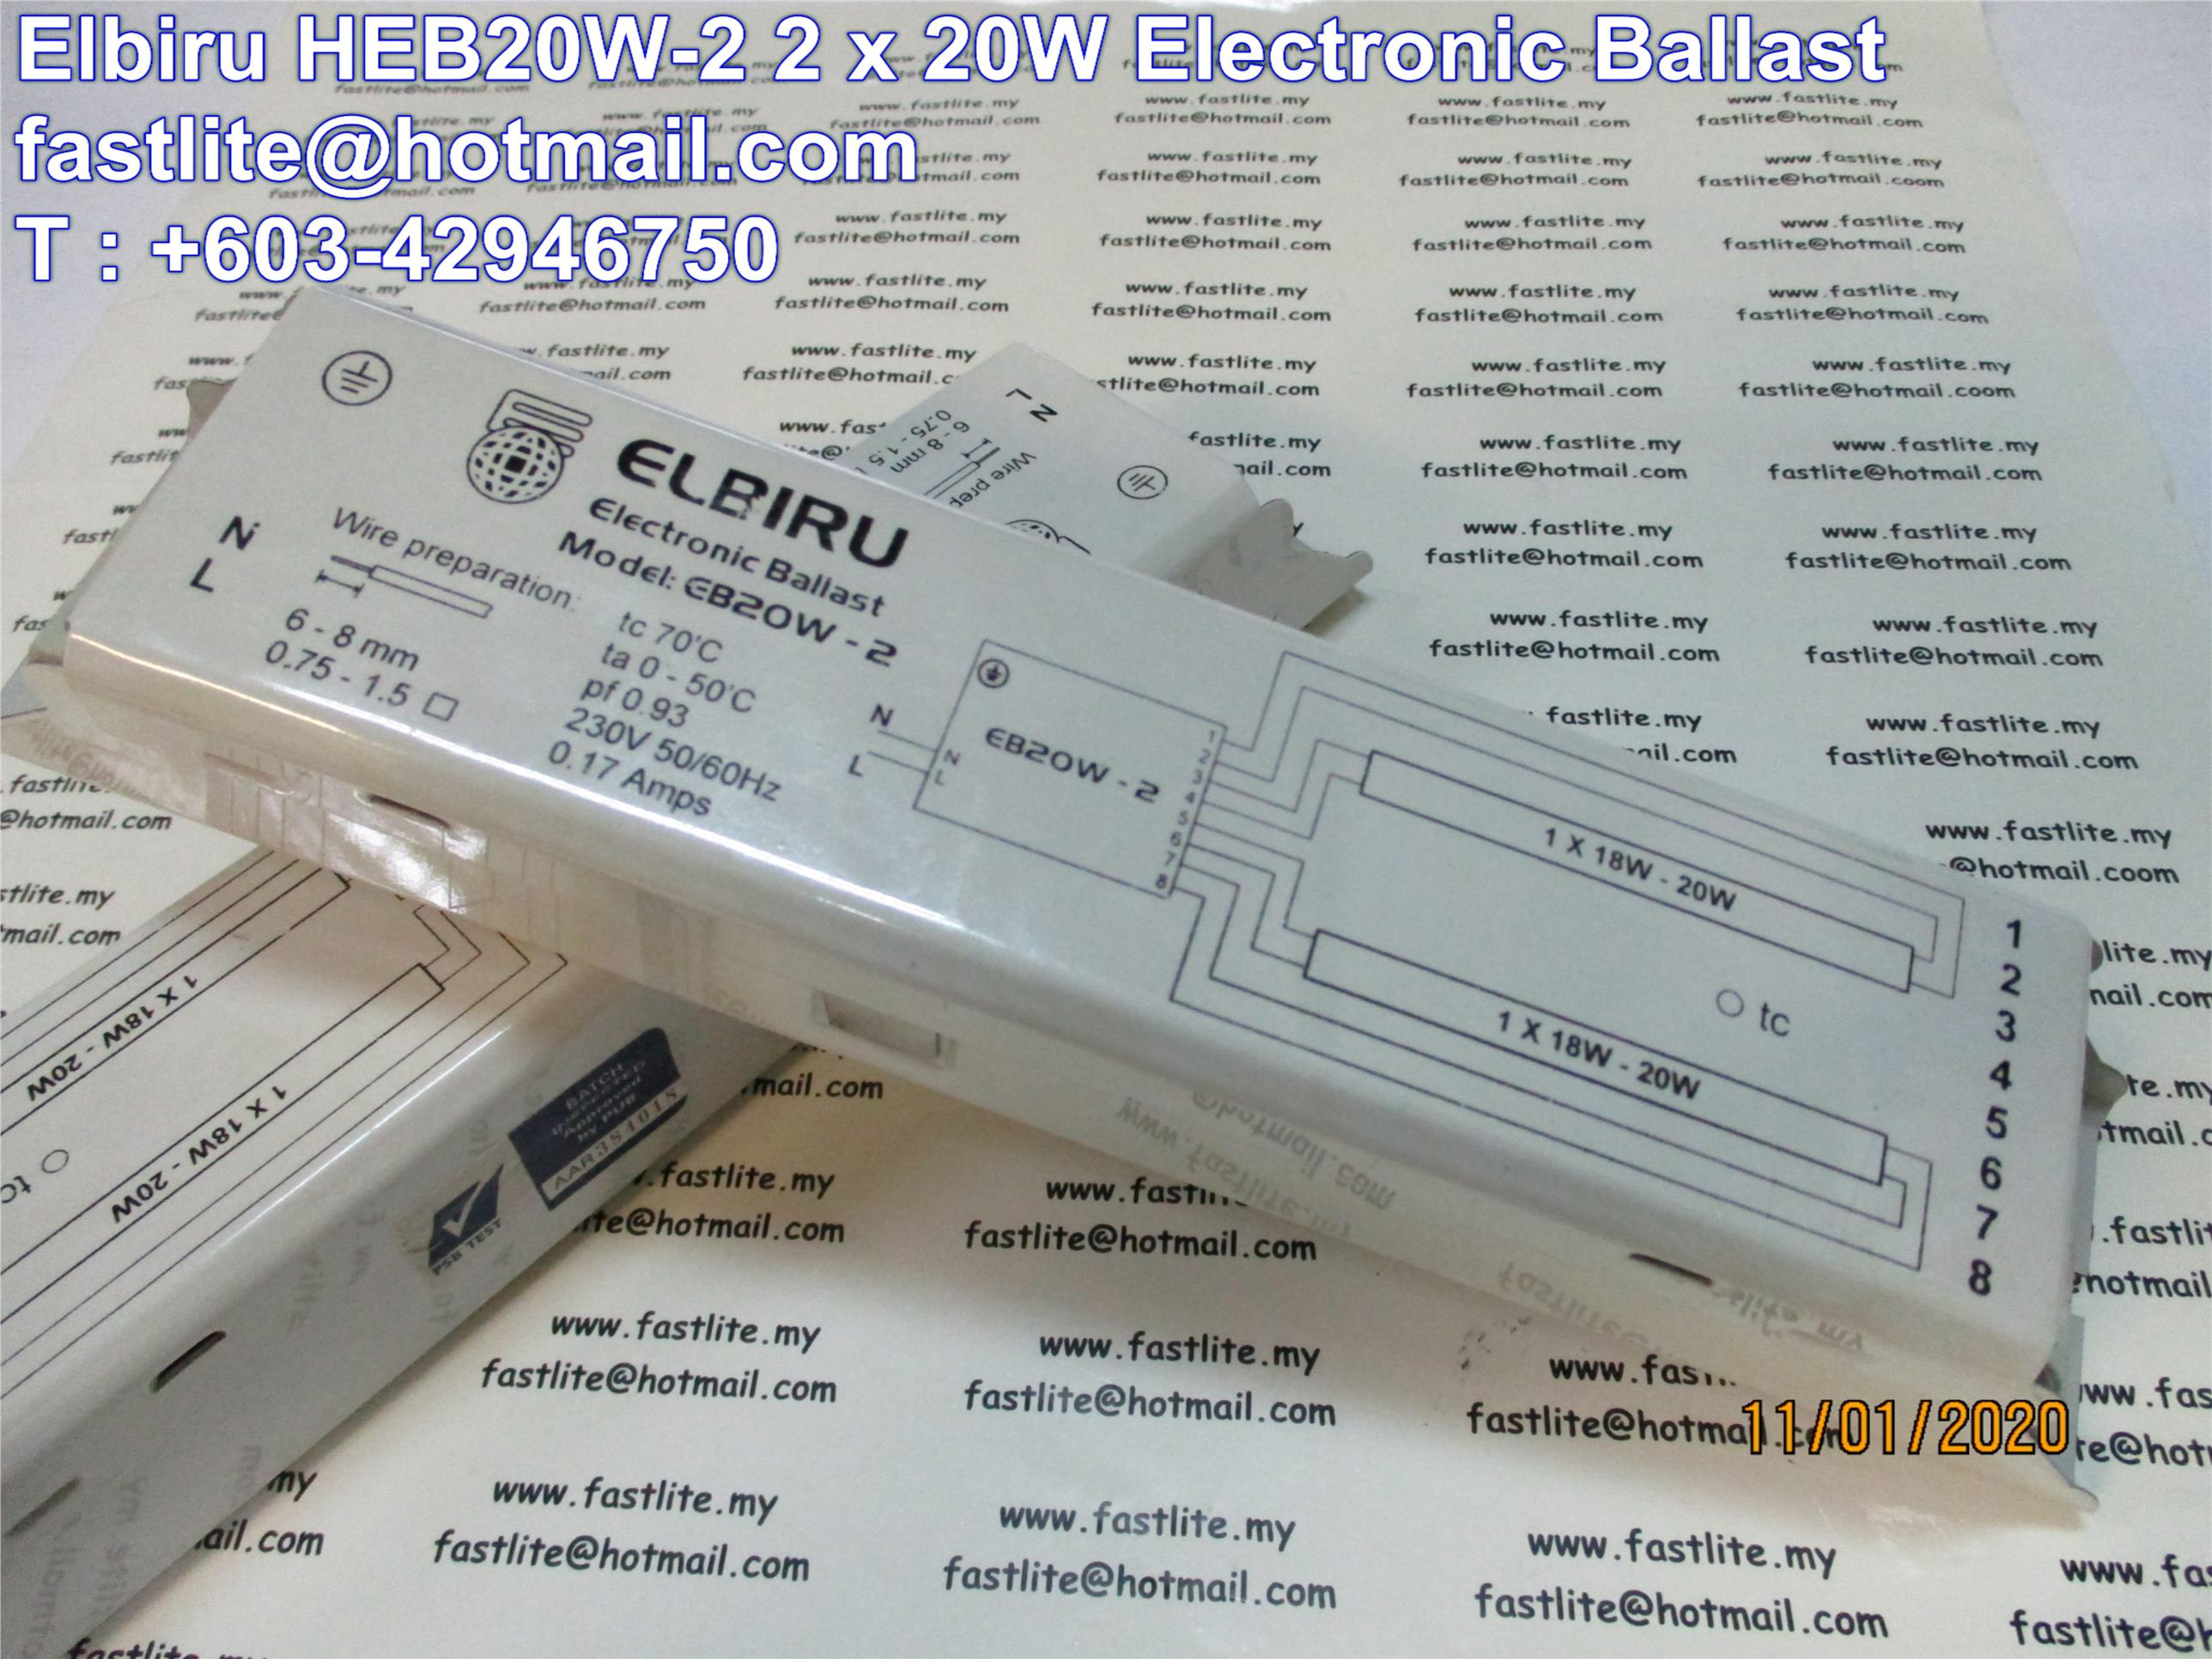 Elbiru 2 x 20W HEB20W-2 Electronic Ballast (Power Factor 0.98)